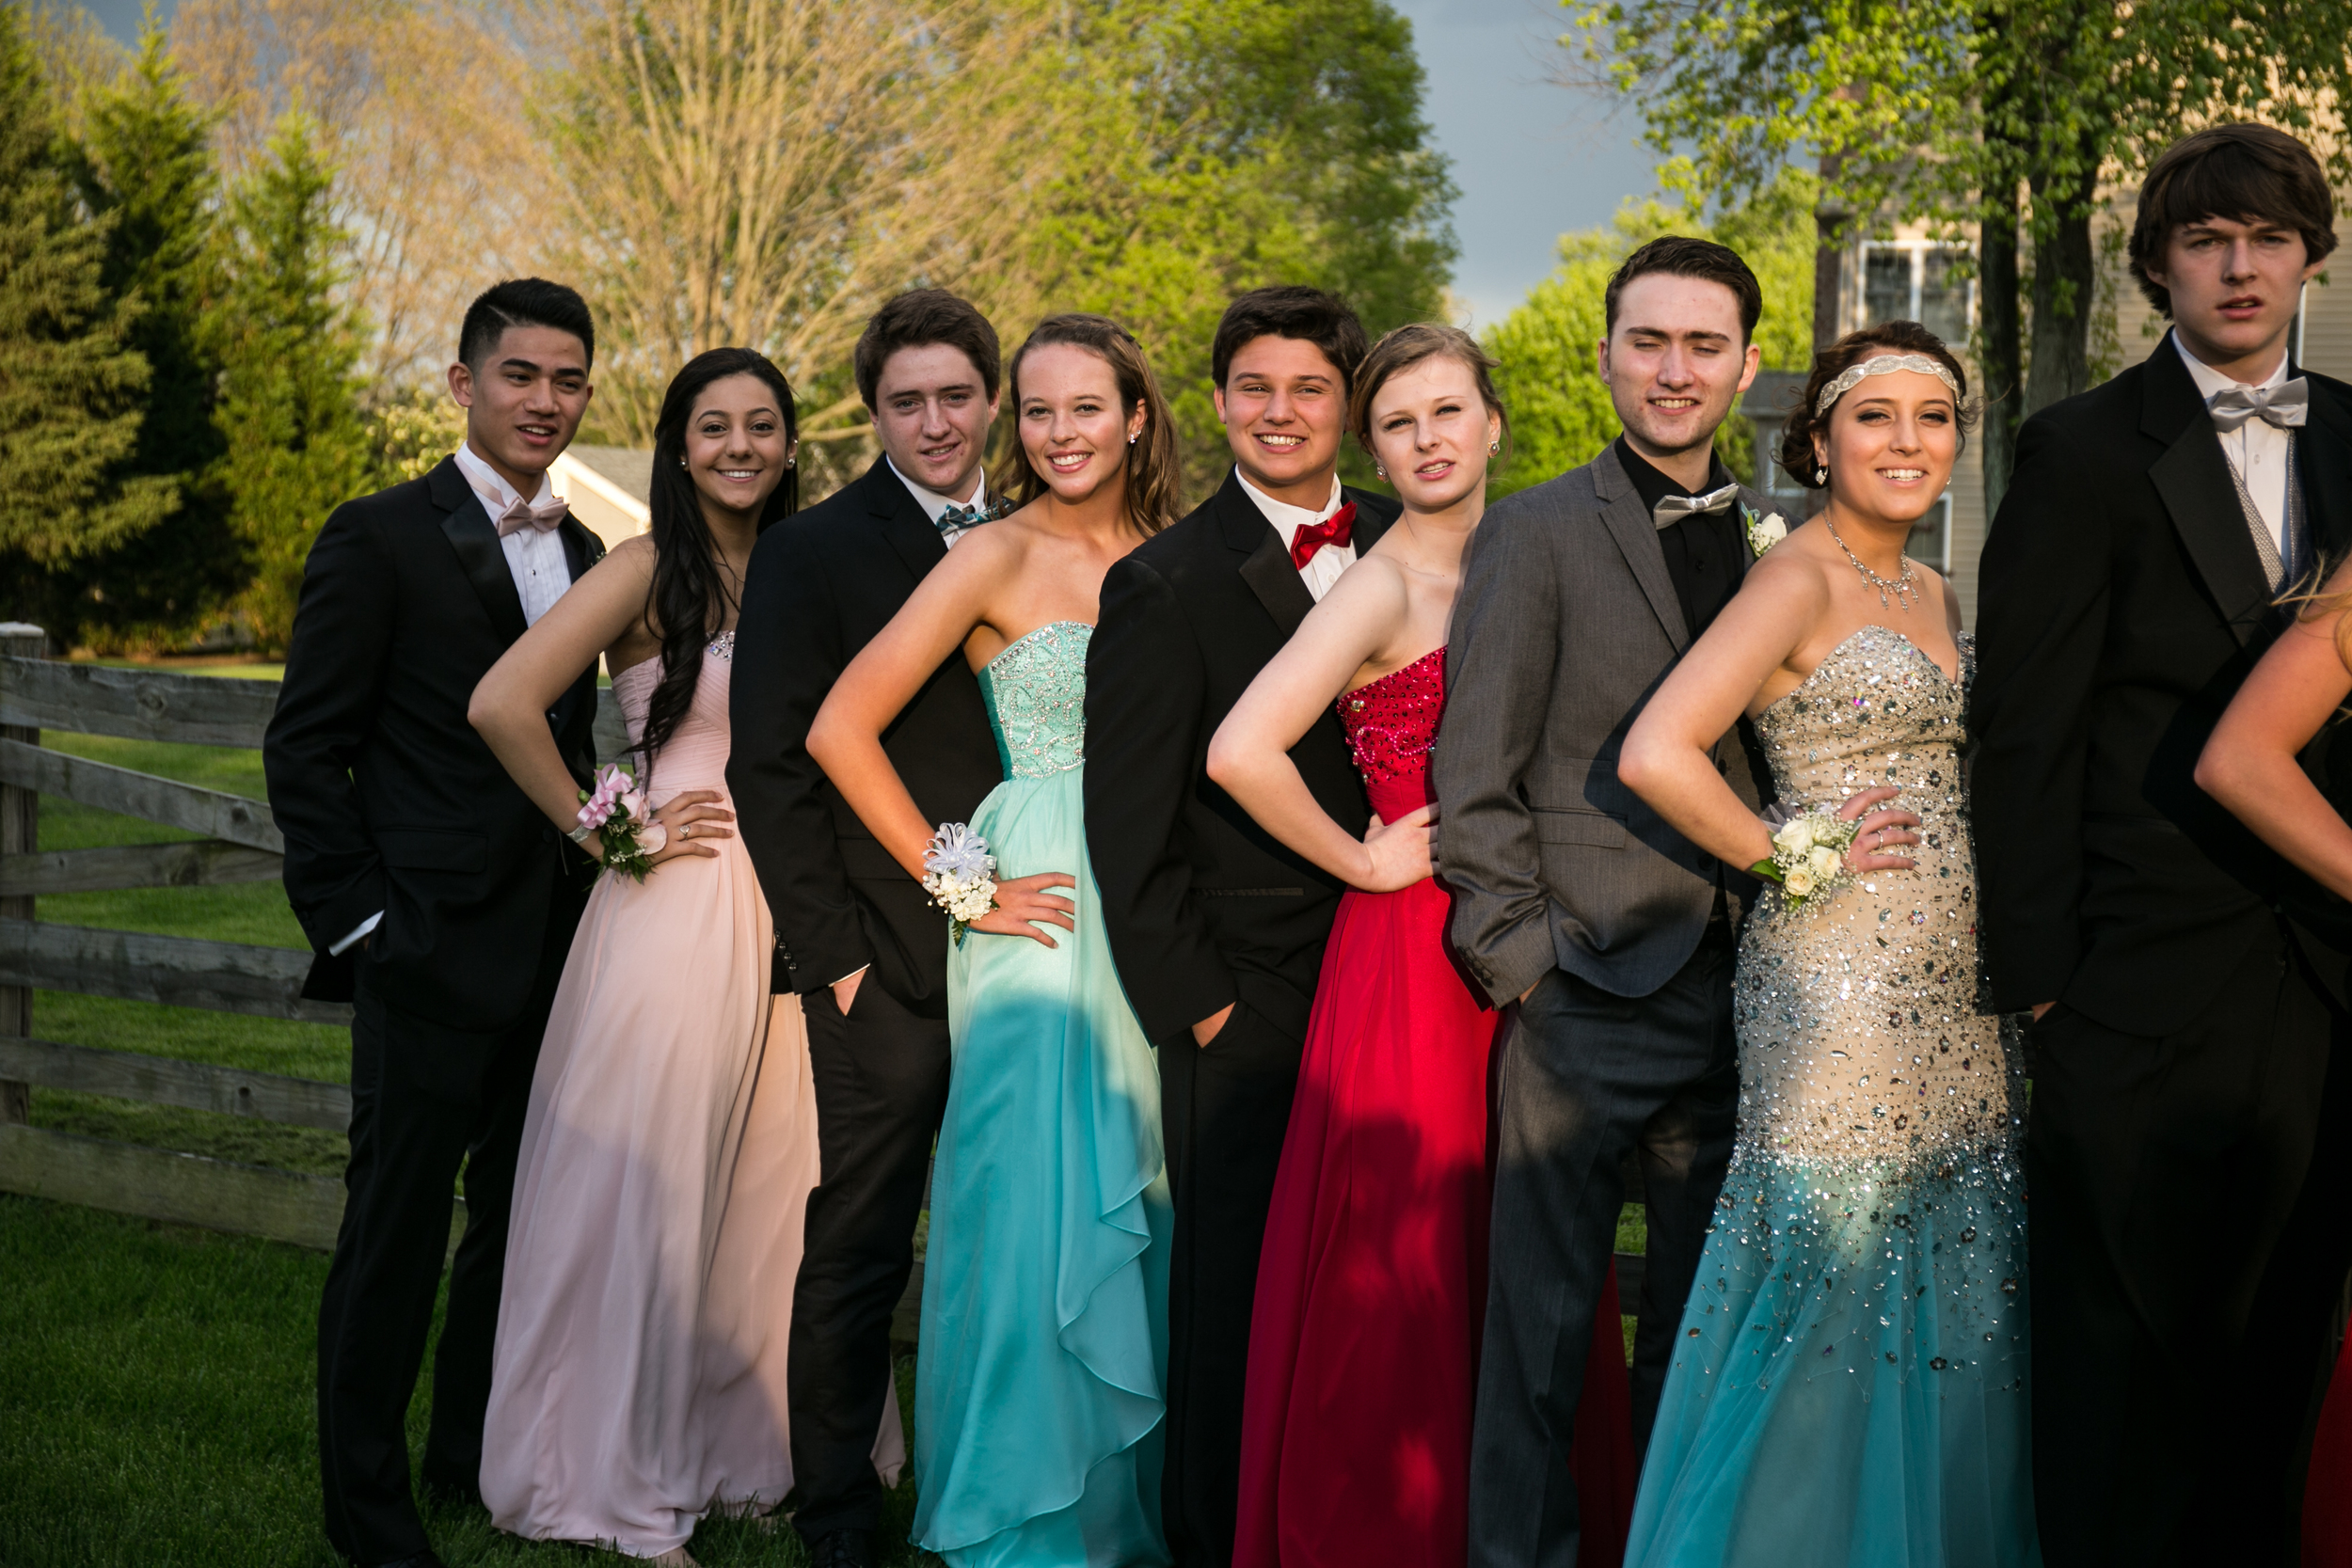 Mount-De-Sales-Pre-Prom-May-2014-53.jpg